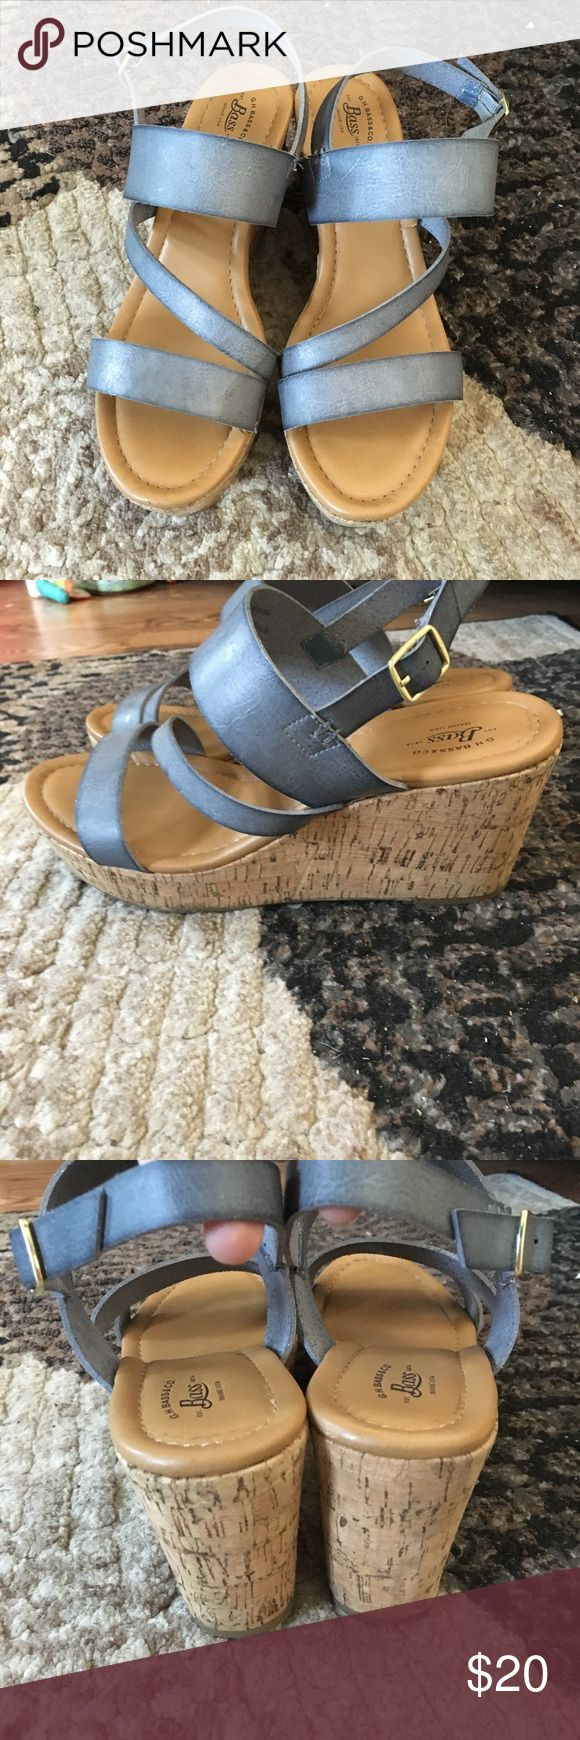 Bass light blue/grey sandals size 9